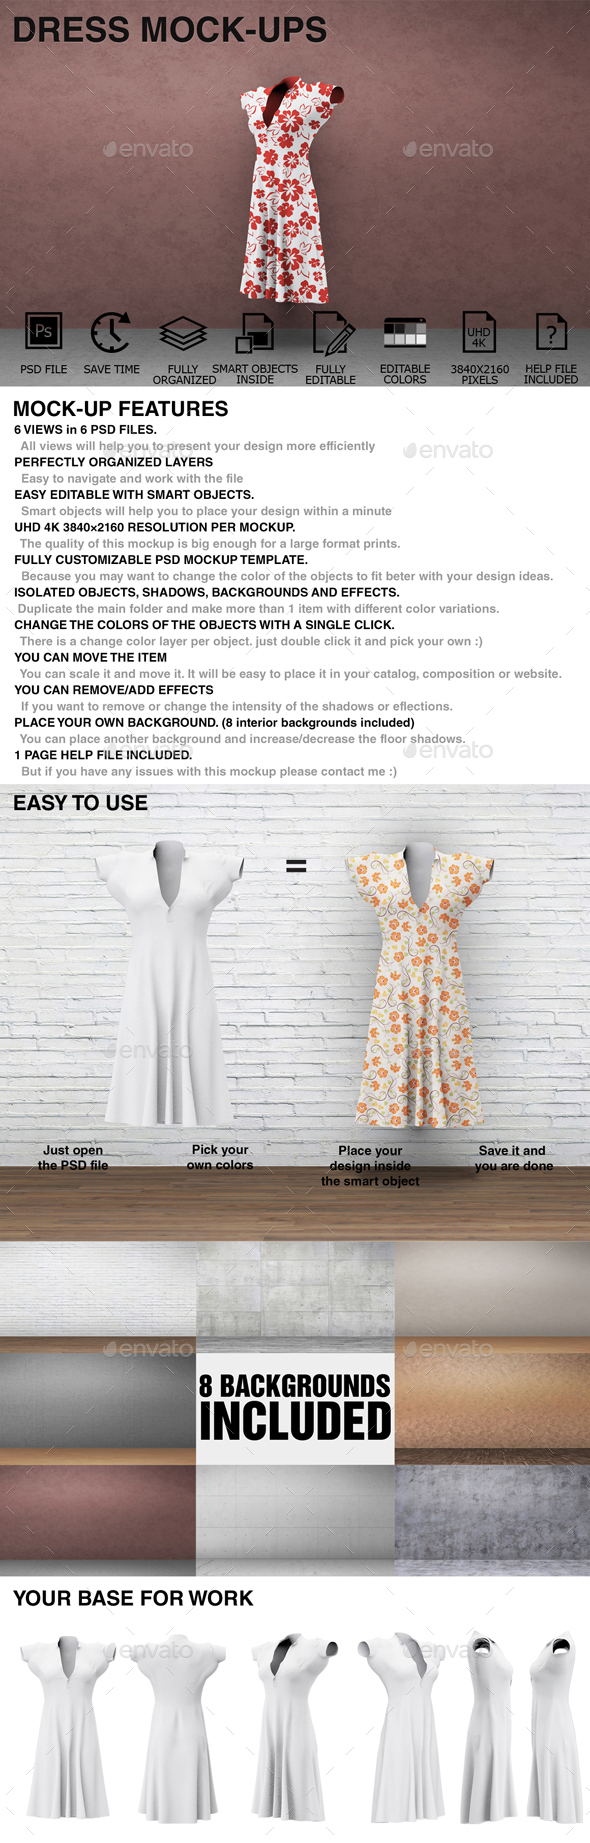 Dress Mockups - Women Clothing Mockups - Miscellaneous Apparel